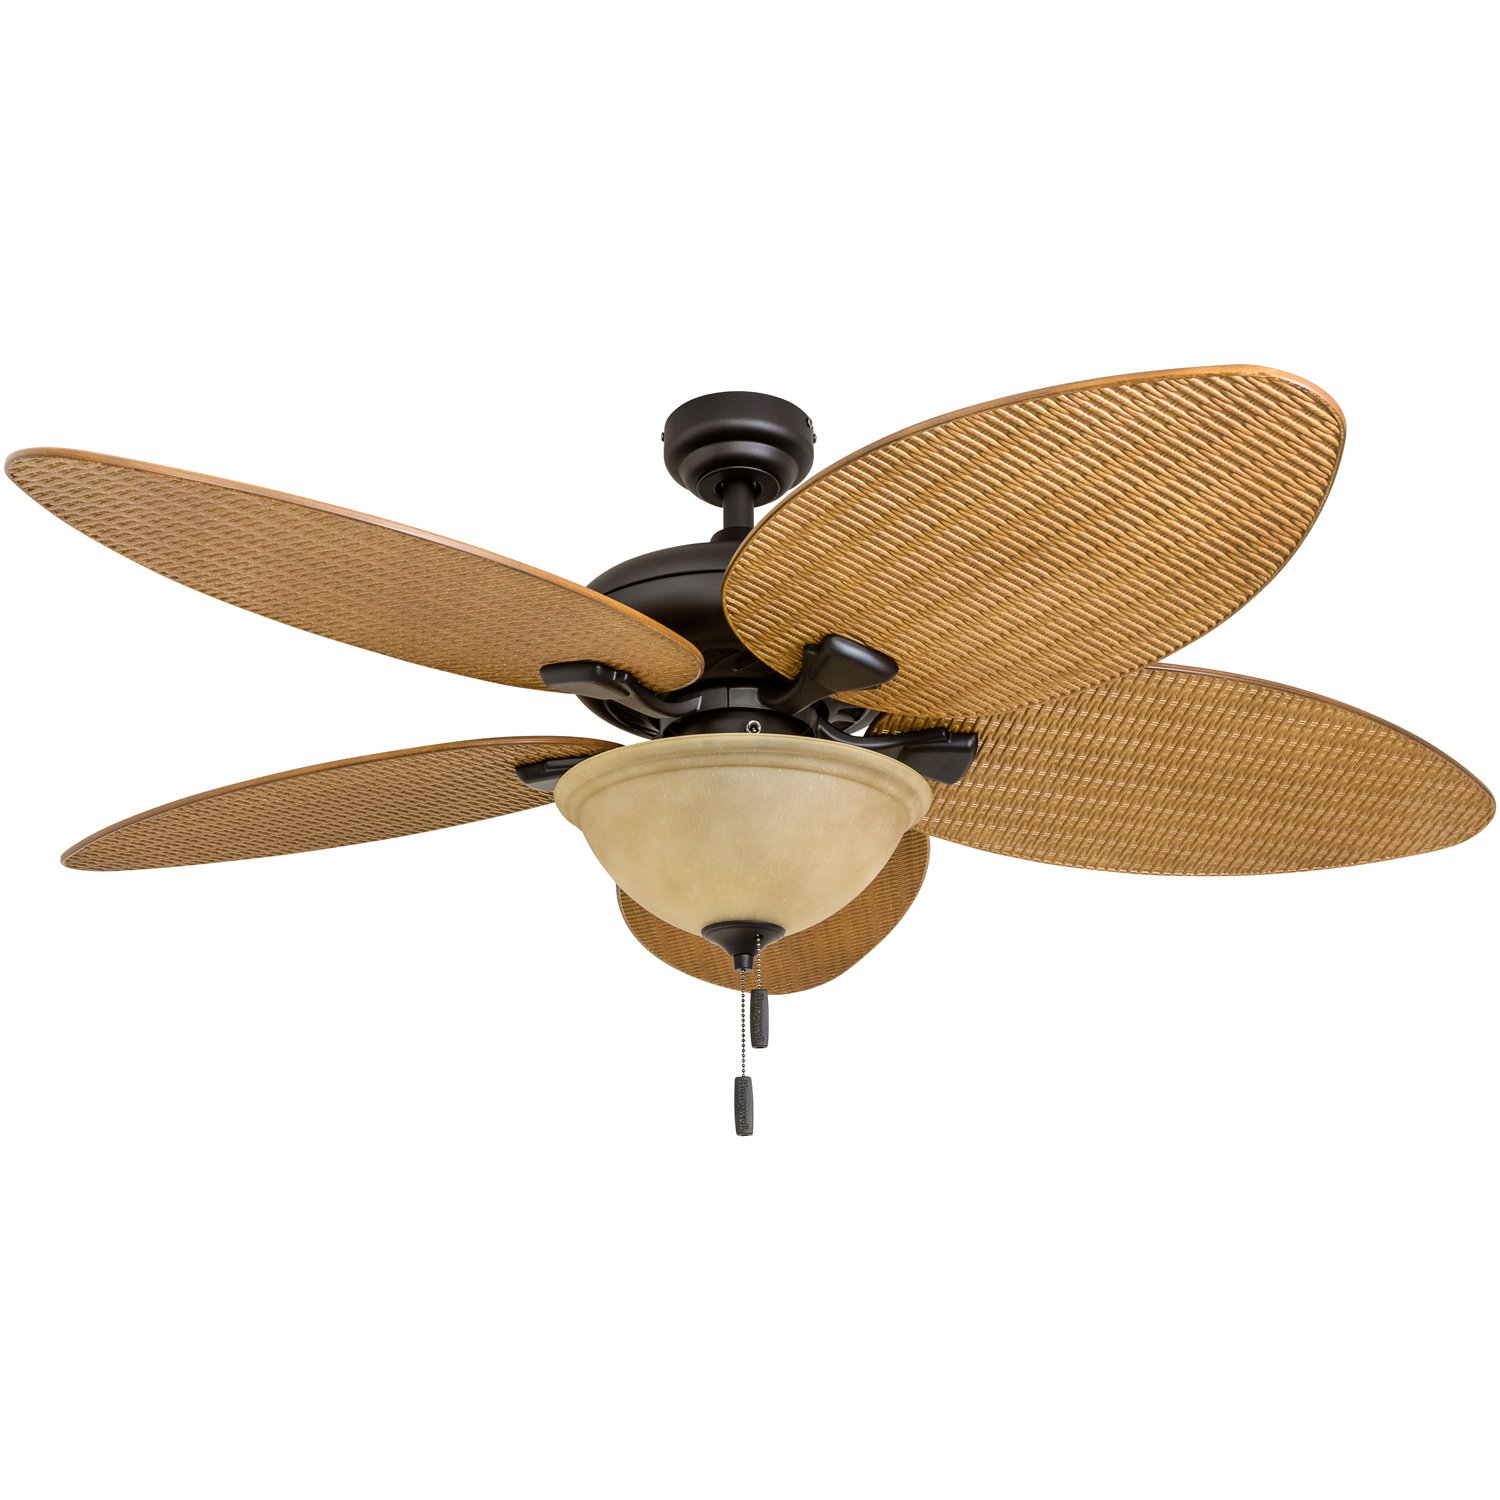 Honeywell Ceiling Fans 50507-01 Palm Island 52-Inch Tropical Ceiling Fan with Tuscan Bowl Light Five Leaf/Wicker Blades, Indoor/Outdoor, Sandstone